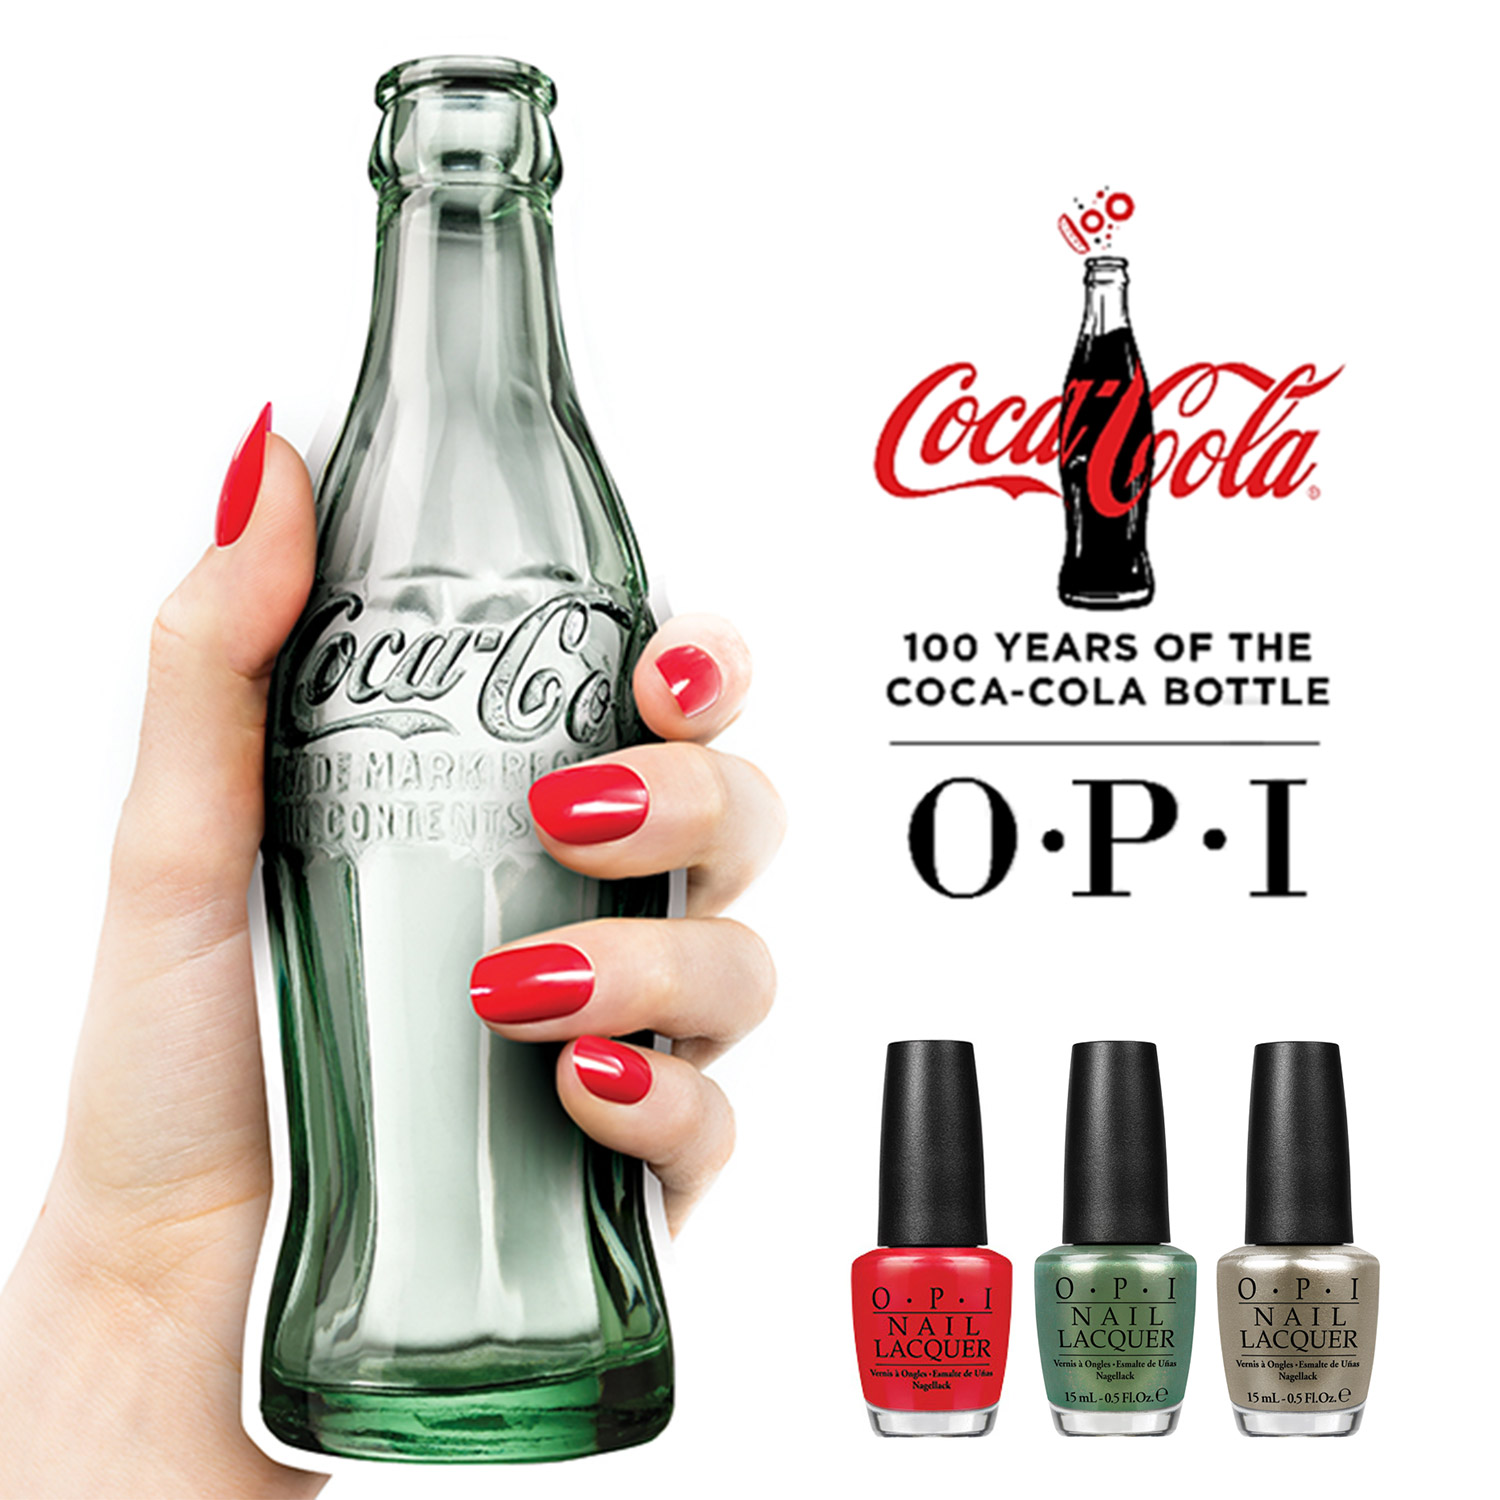 OPI 100 Years of the Coca-Cola Bottle Limited Edition Nail Lacquer